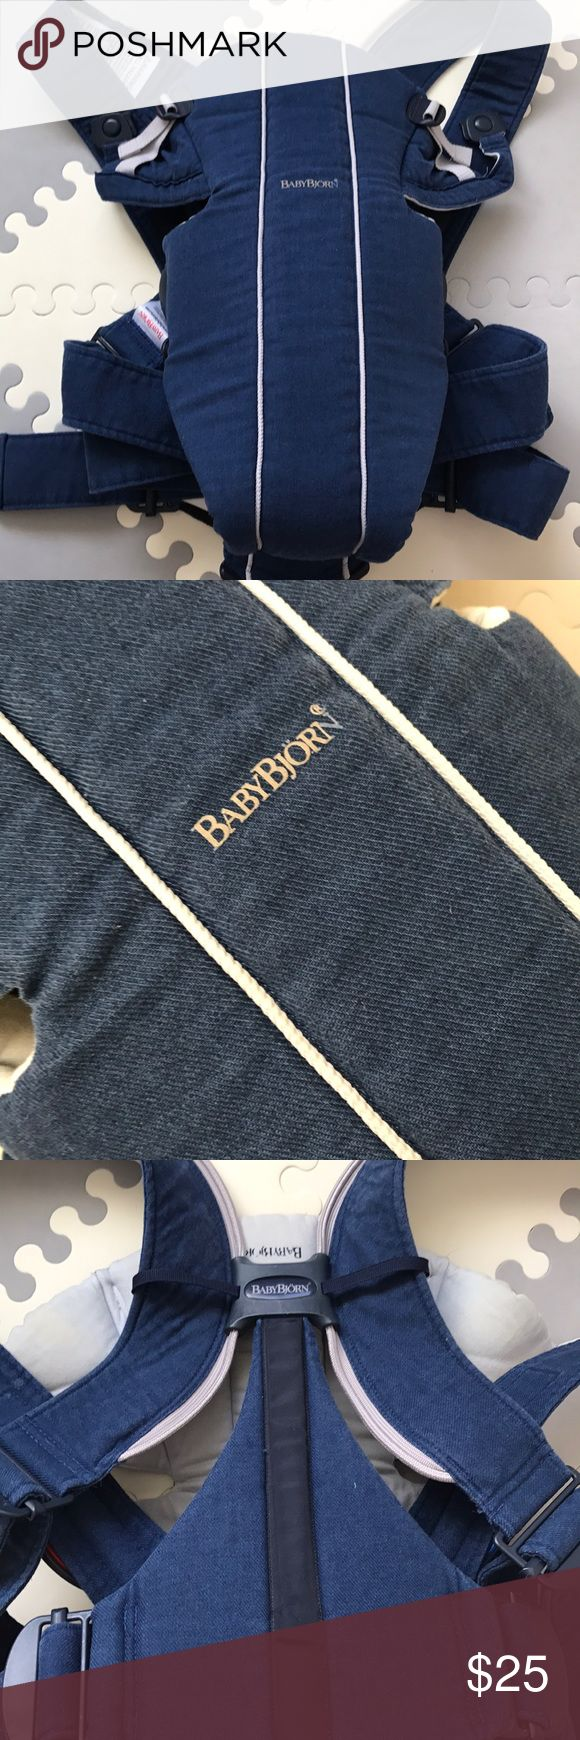 Baby Bjorn Original Carrier Bought from other posher couple months ago as good used condition. There are stains (see pictures 4,5,6) which the original owner didn't mention and I didn't notice until recently. I'm selling because my daughter didn't like it. The color is navy blue. Baby Bjorn Other